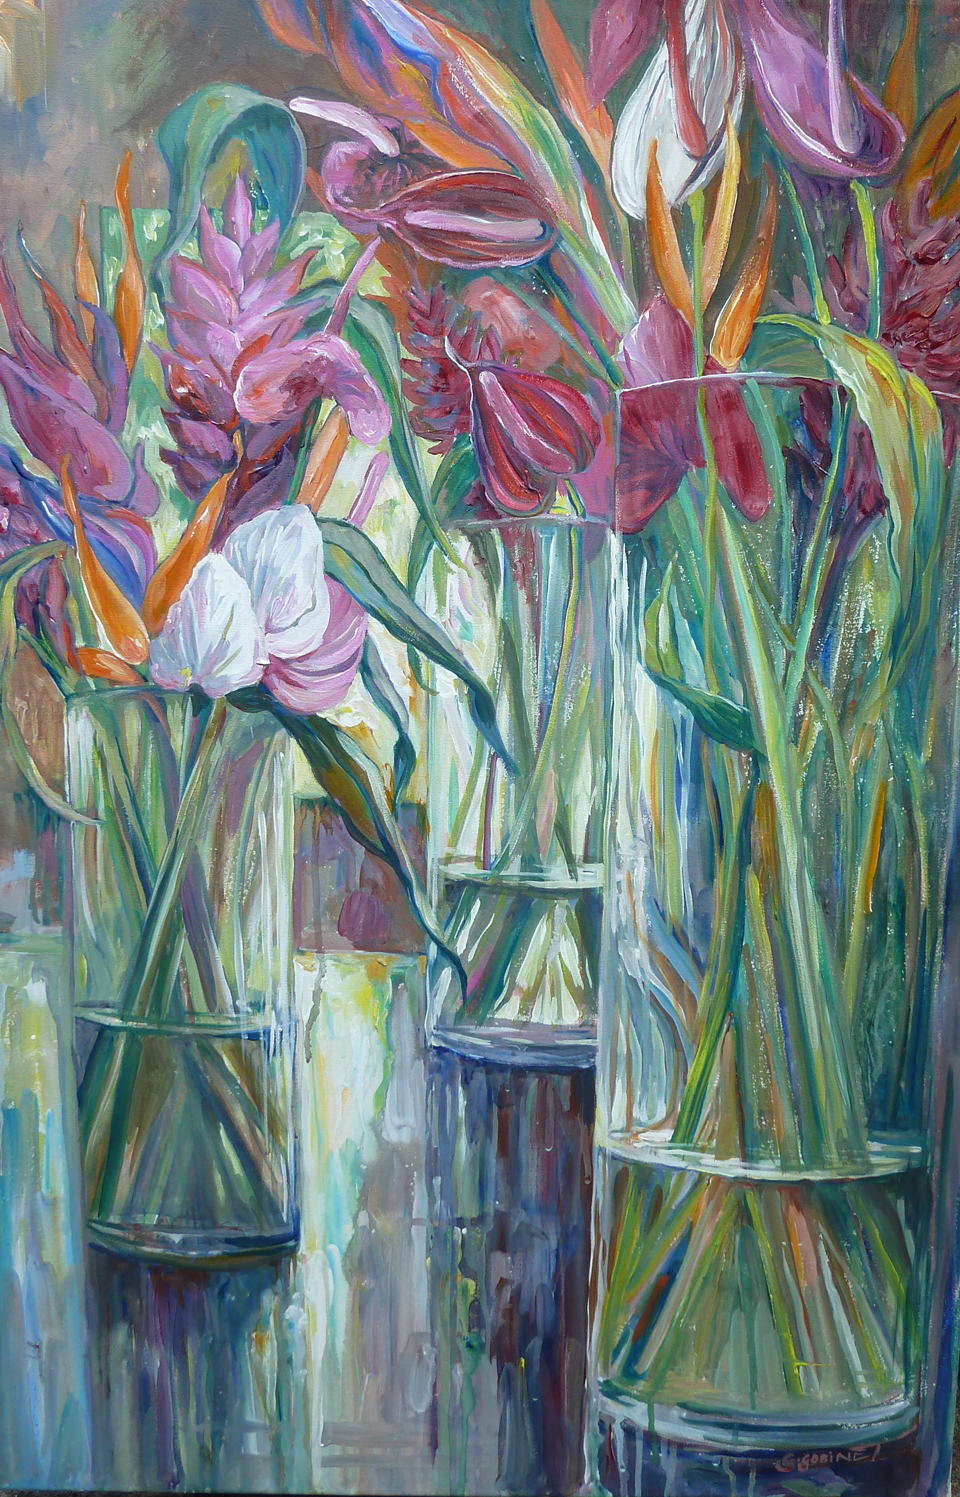 Vases.